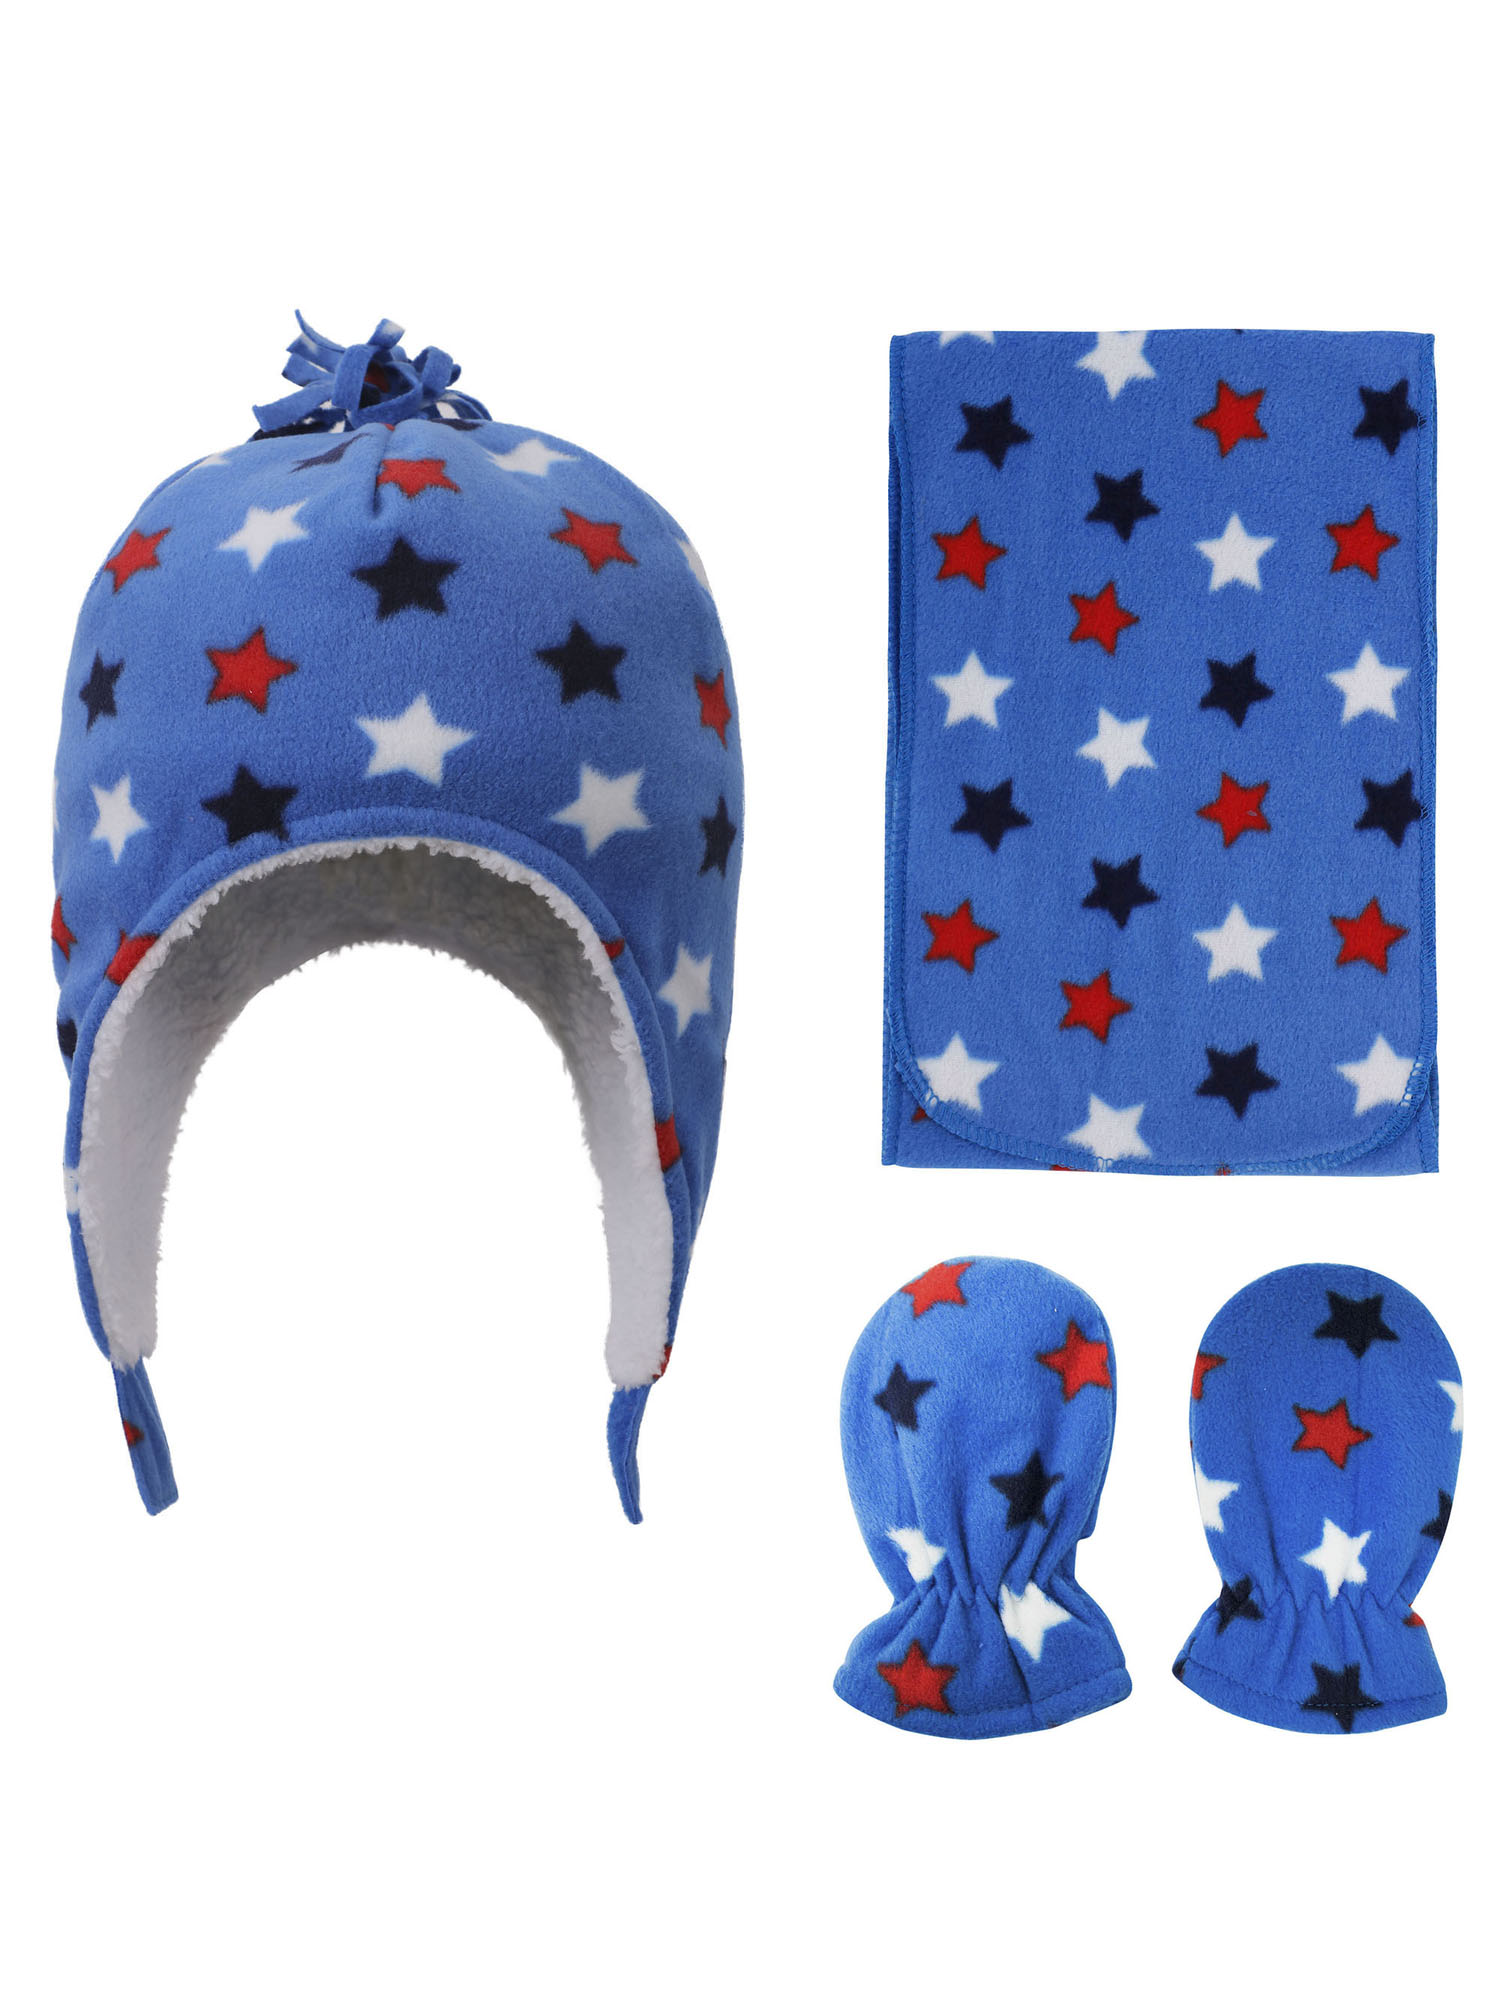 Simpli-Kids Patterned Sherpa Lined Hat, Scarf Glove Set, Star Print, 6-24 Month